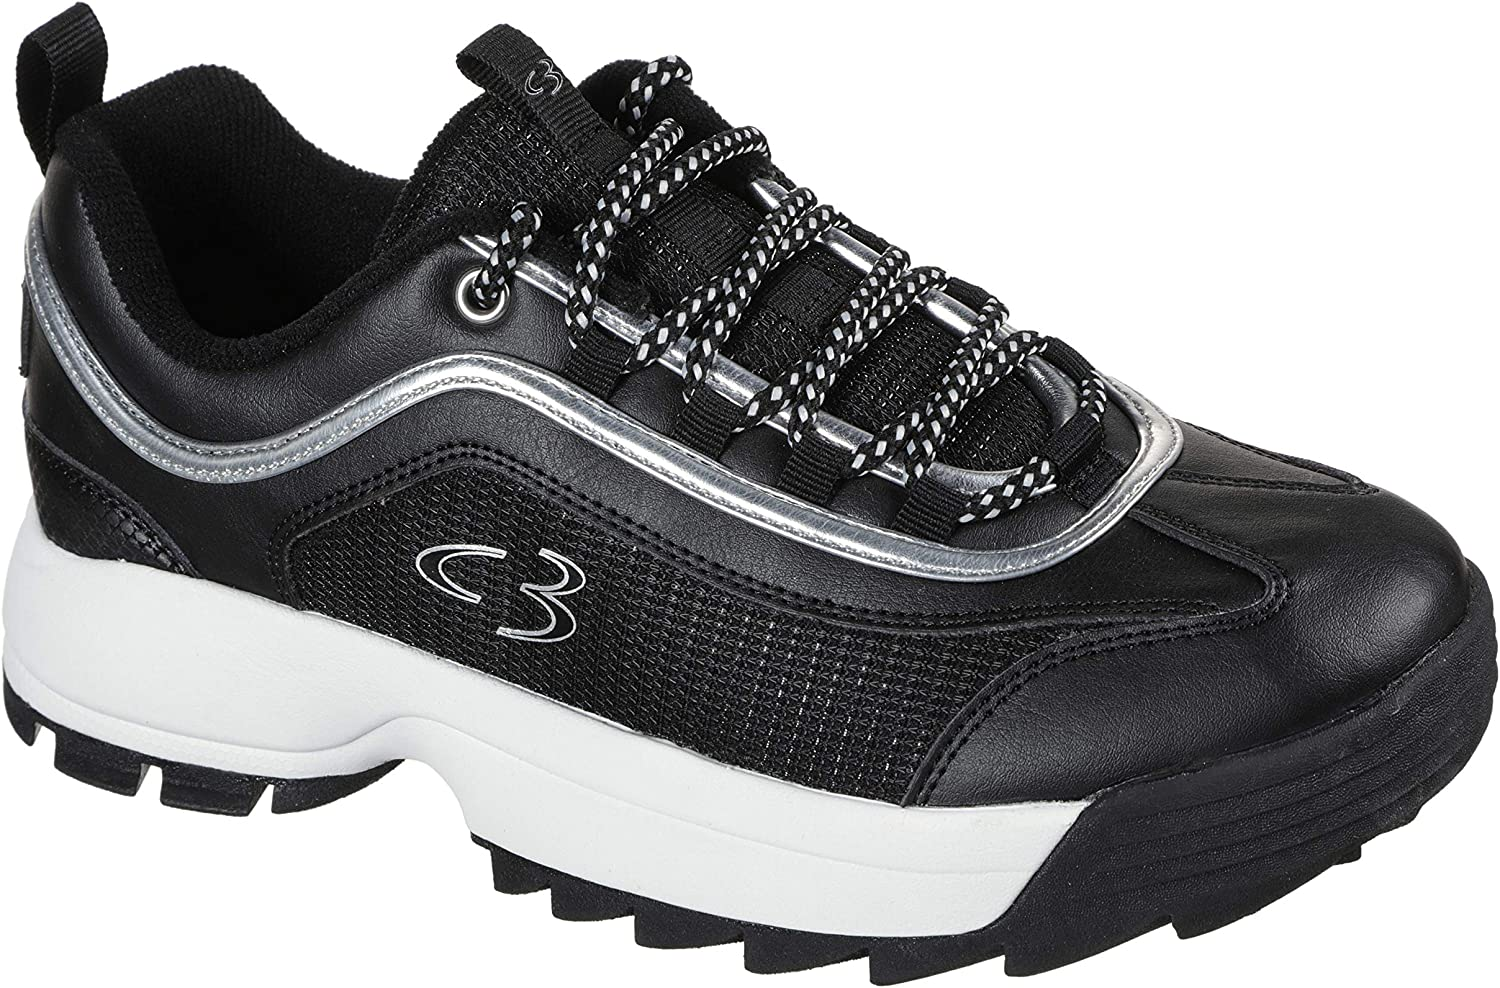 Concept 3 by Skechers Women's Limited time sale Fresh Sneak Beyond Fashion Lace-up depot